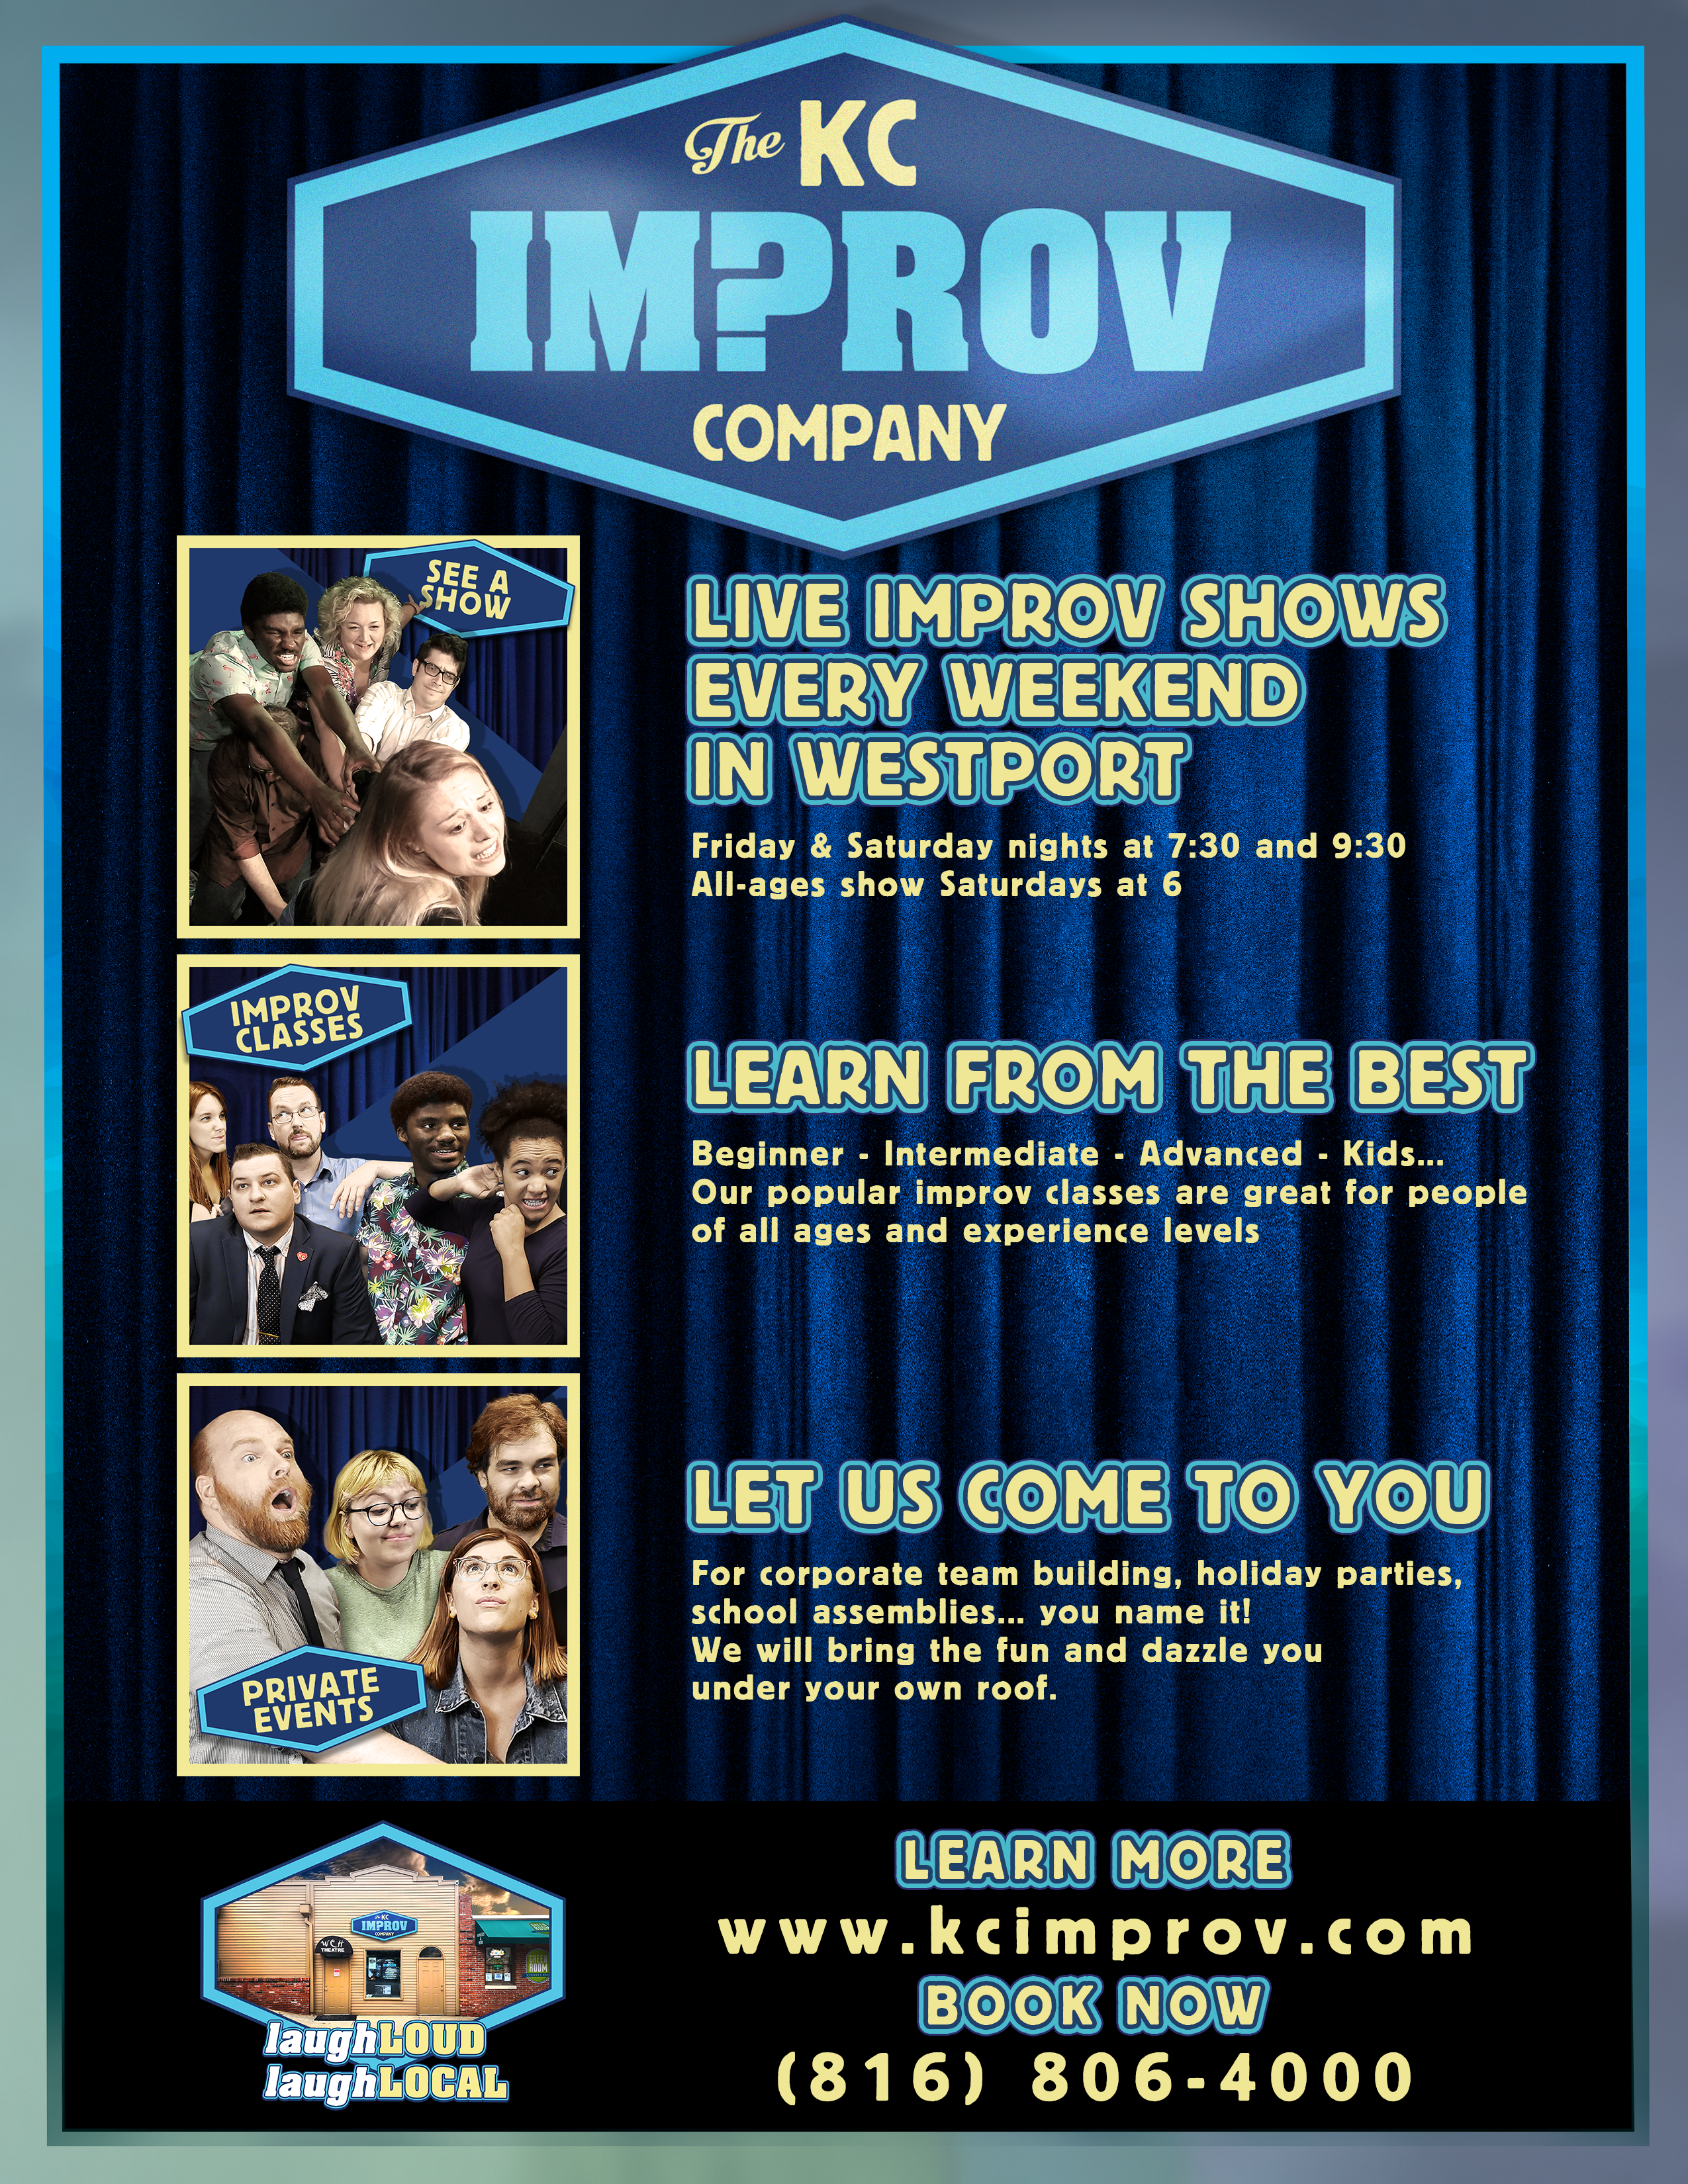 kc improv co info poster